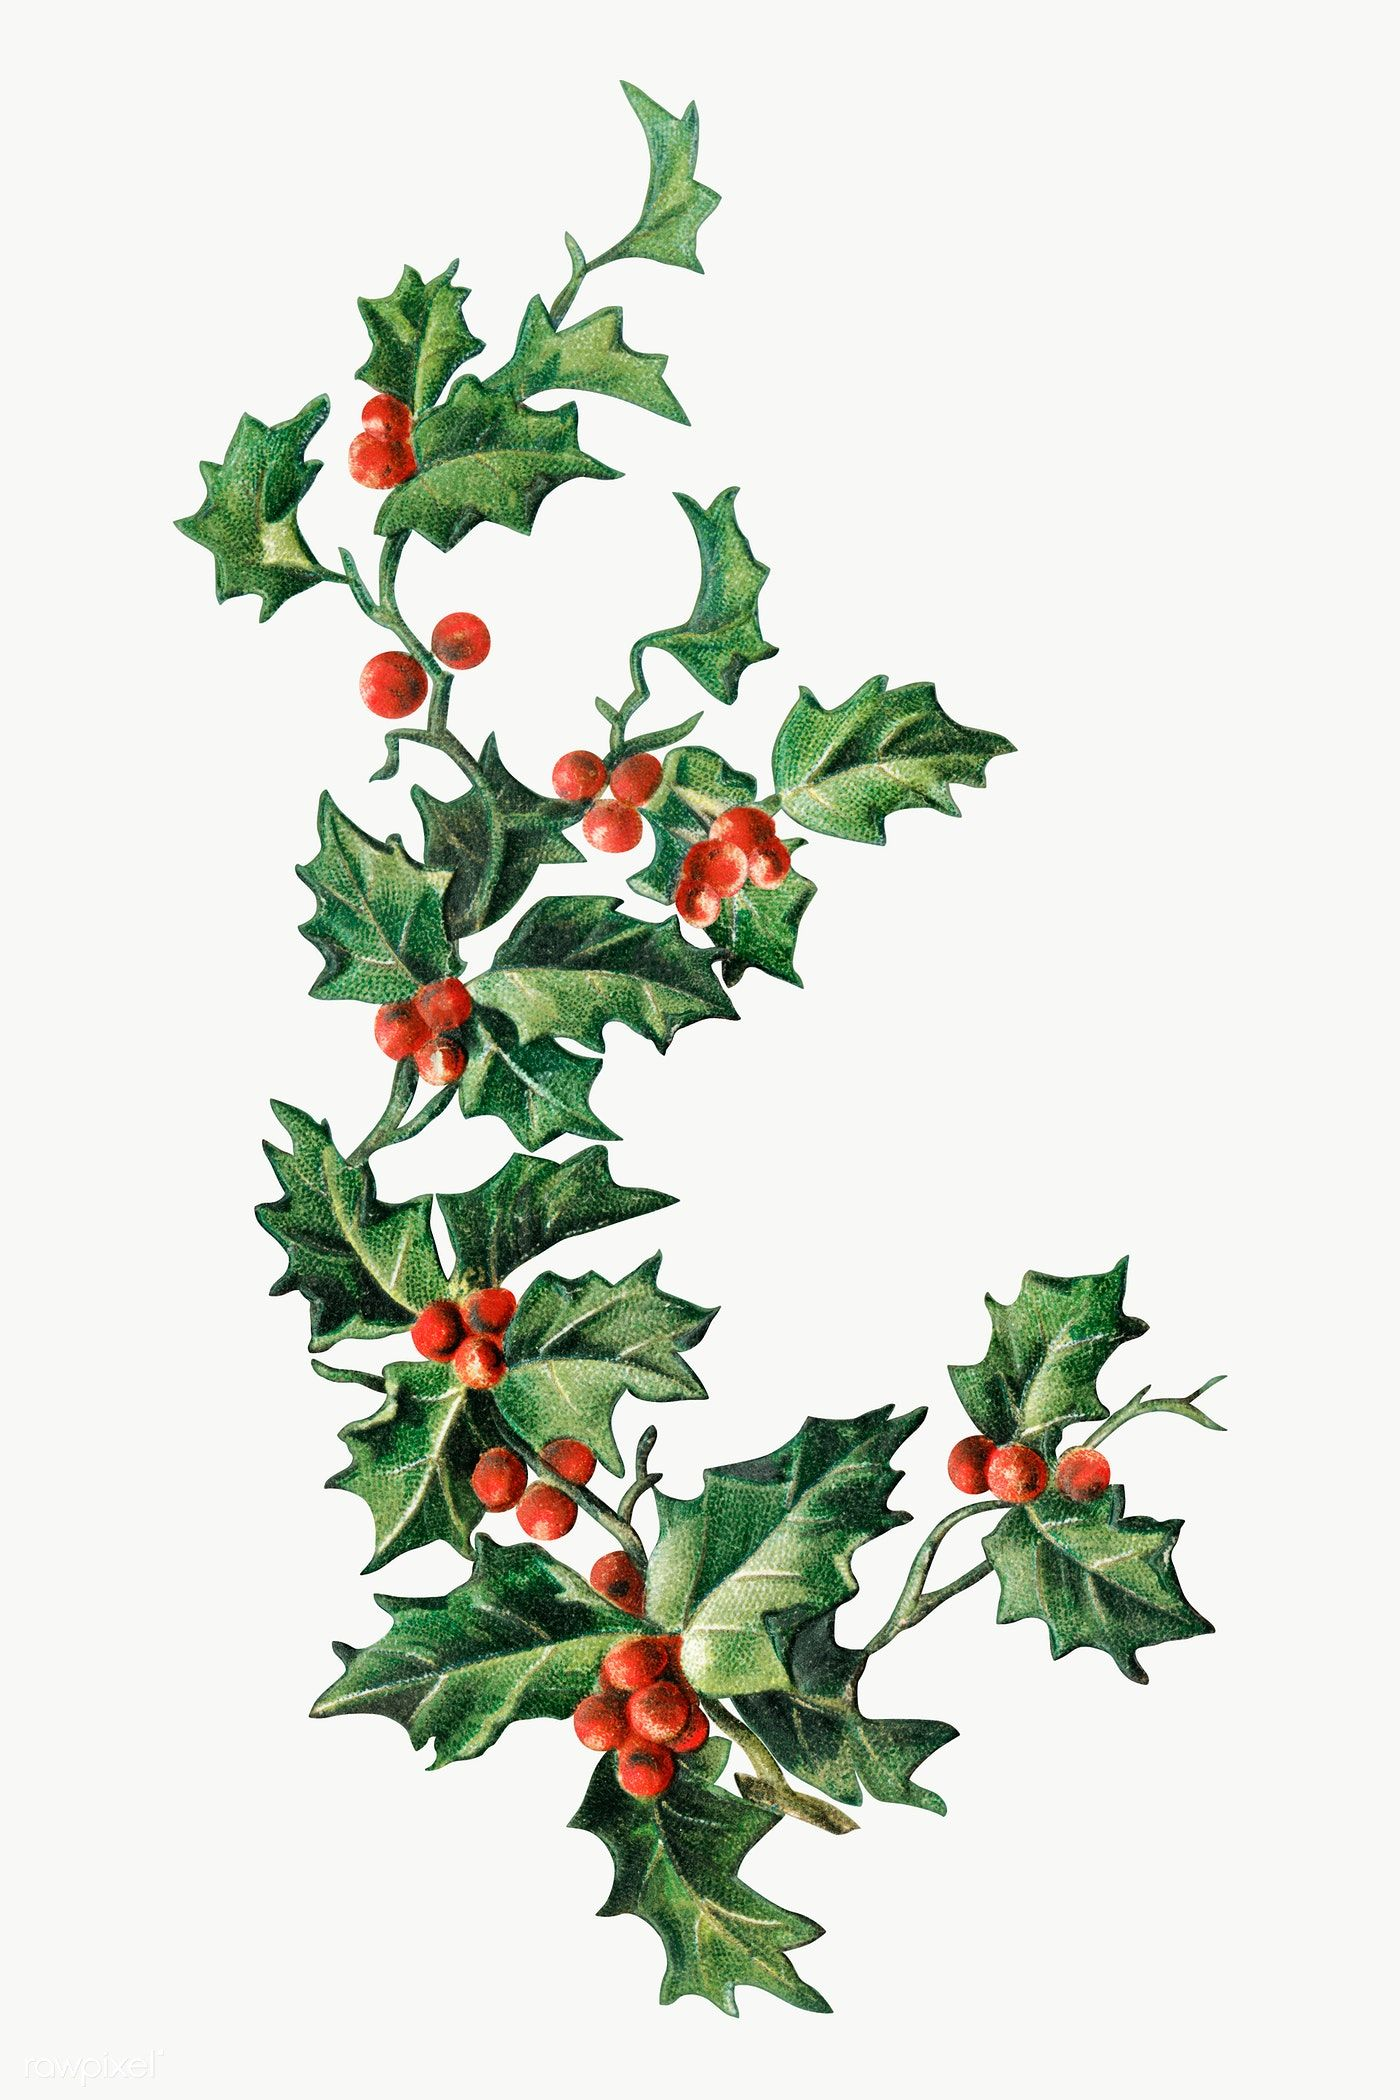 Festive Holly Leaves Transparent Png Premium Image By Rawpixel Com Nam Holly Leaf Christmas Plants Christmas Leaves